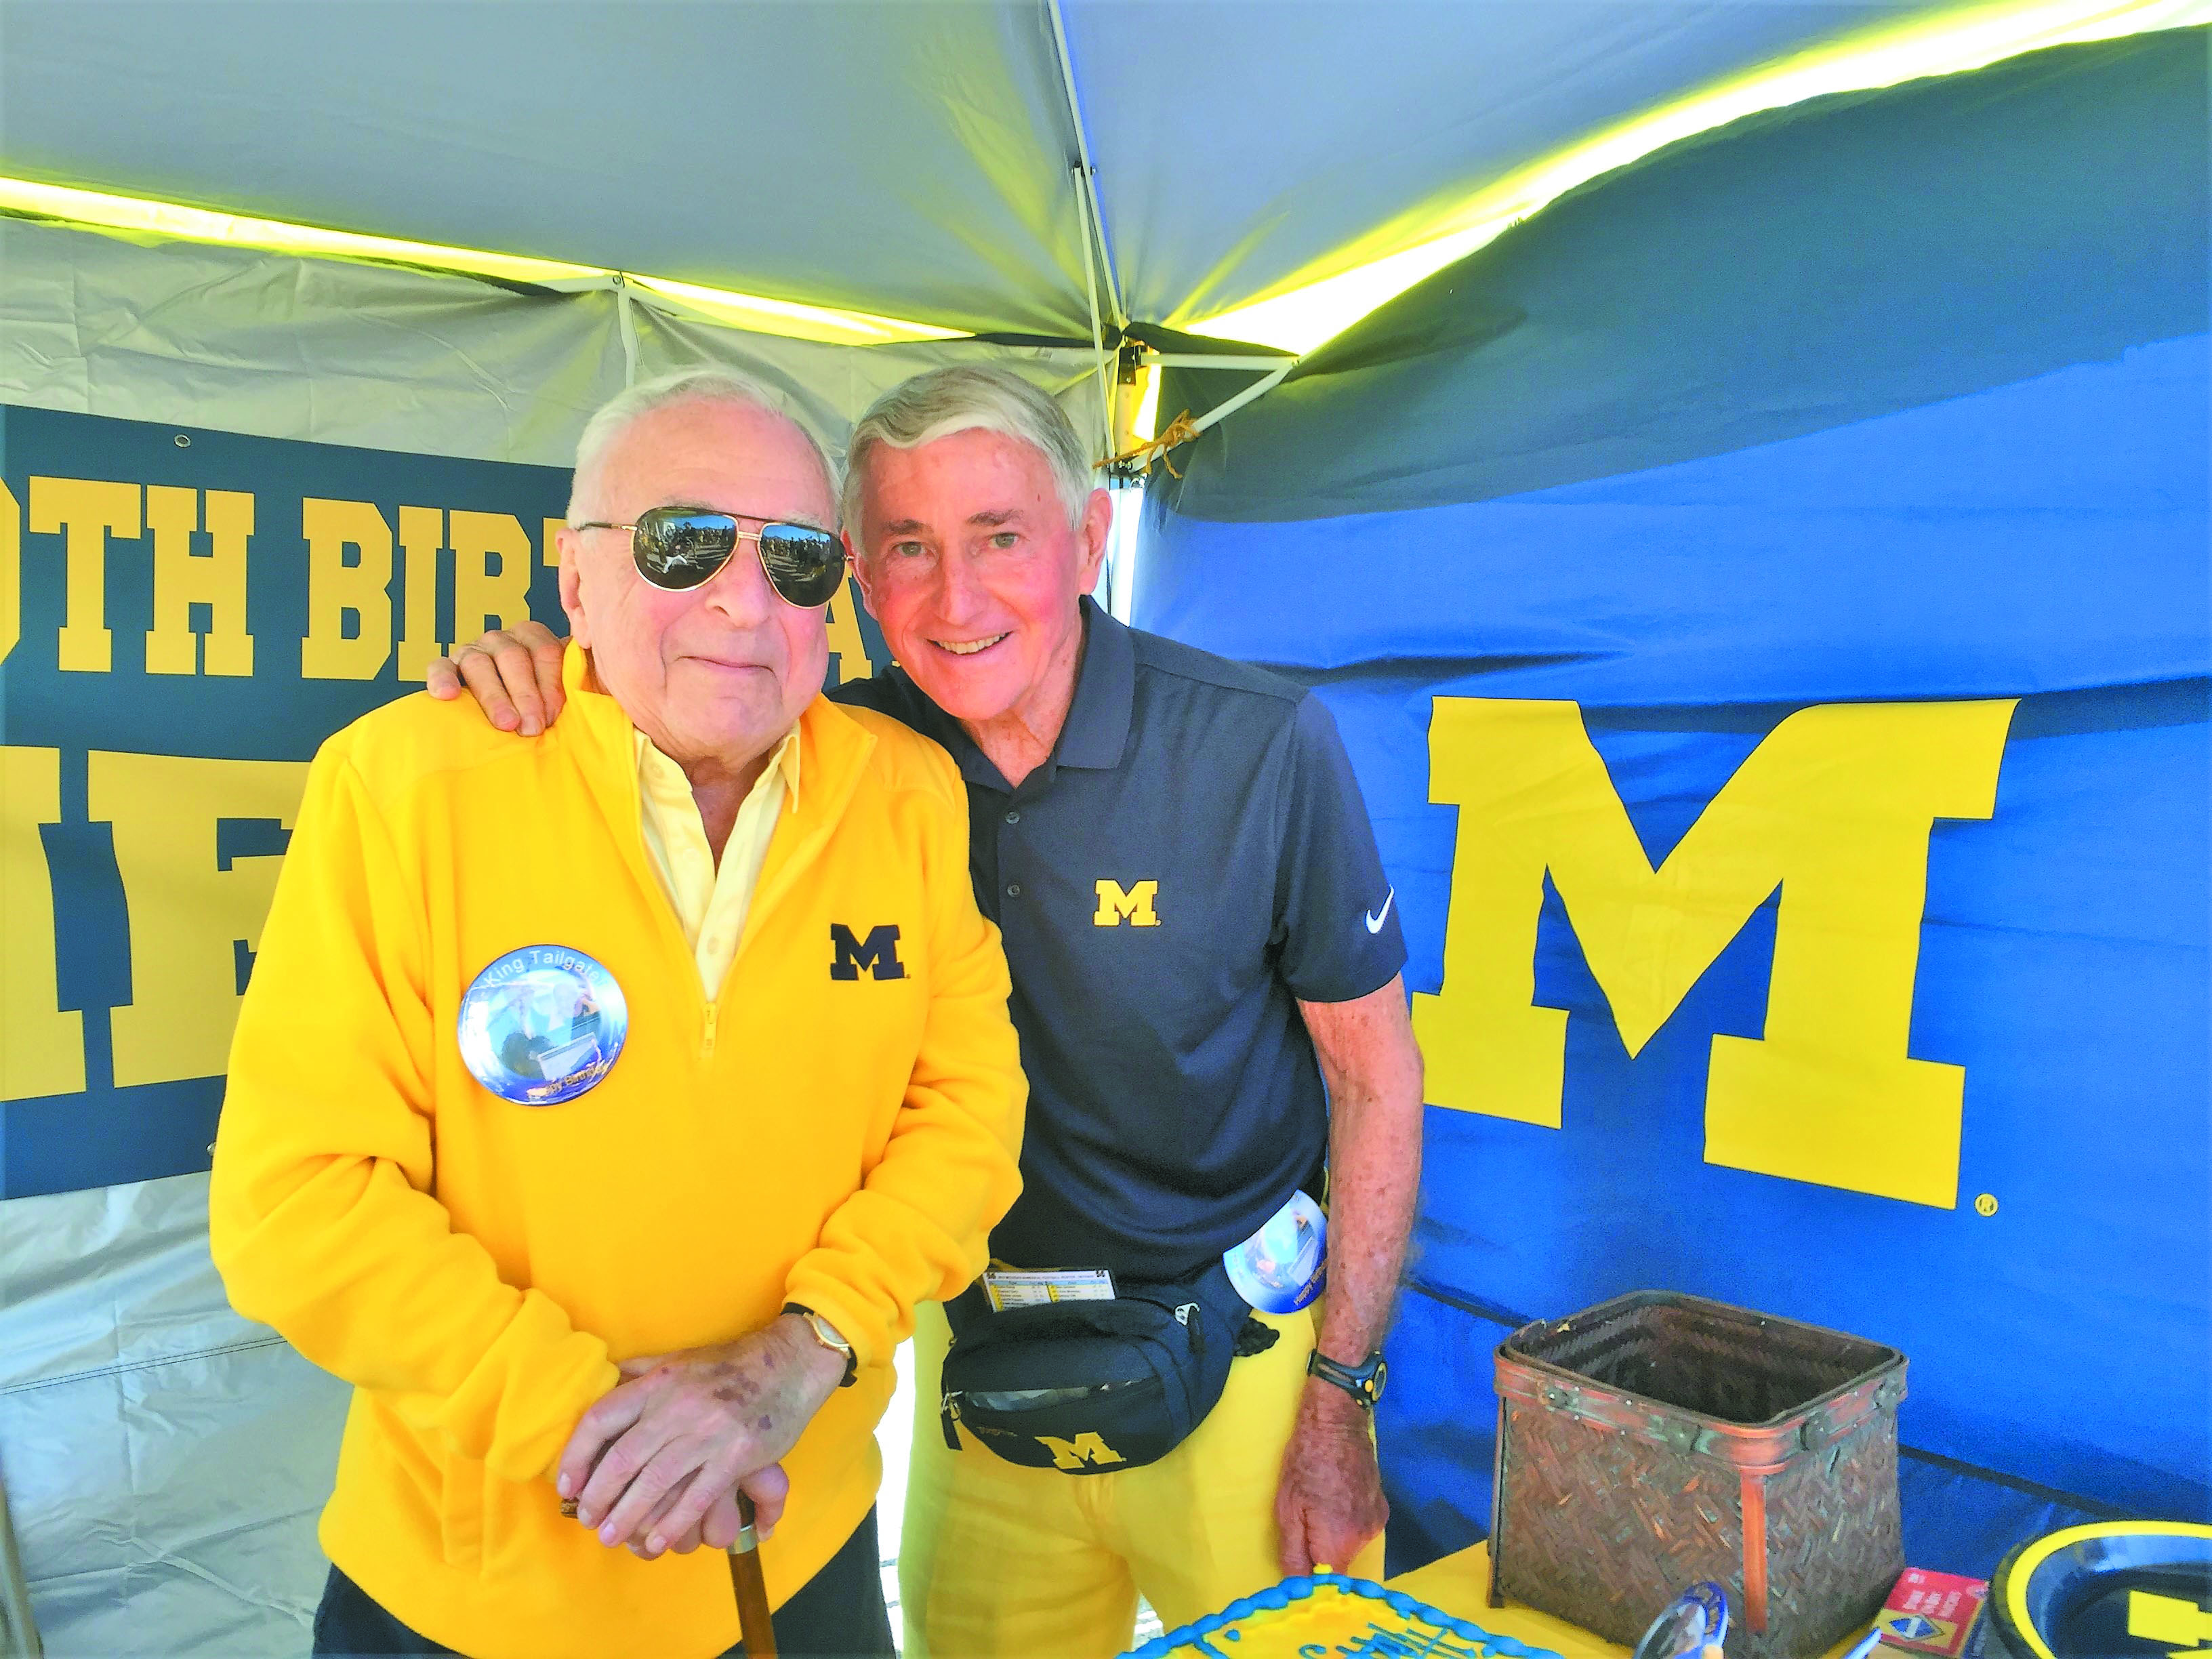 Mel Lester and Ira Jaffe have hosted U-M tailgate parties for nearly 50 years and have hosted about 100,000 people. They are honorary co-chairs of the JCC event.